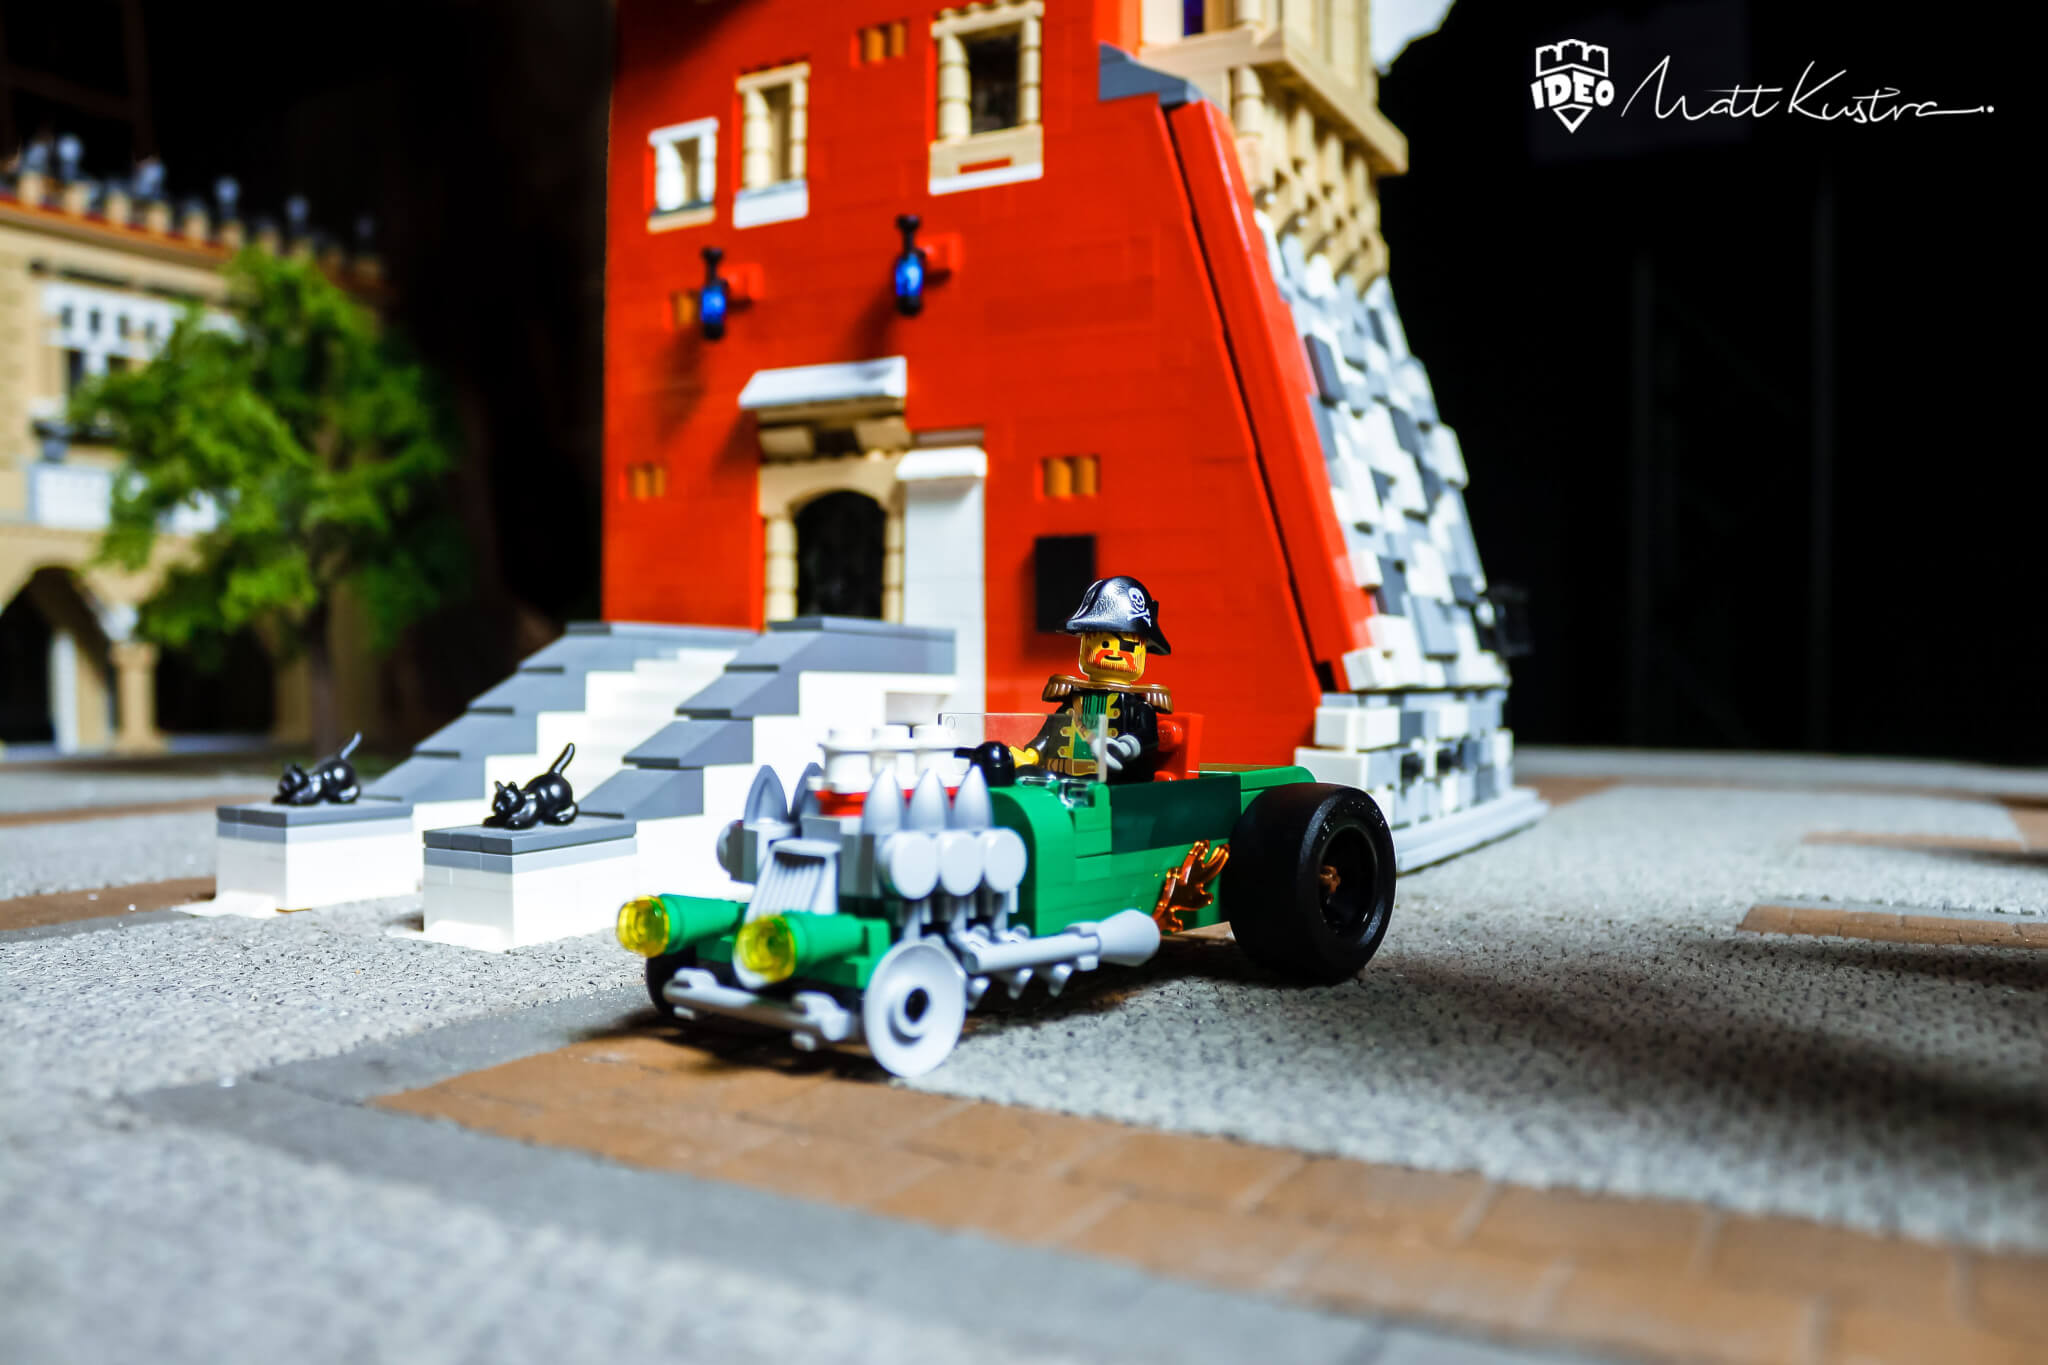 Cloth Hall Krakow Makes Dreams Come True By Professional Lego Builder